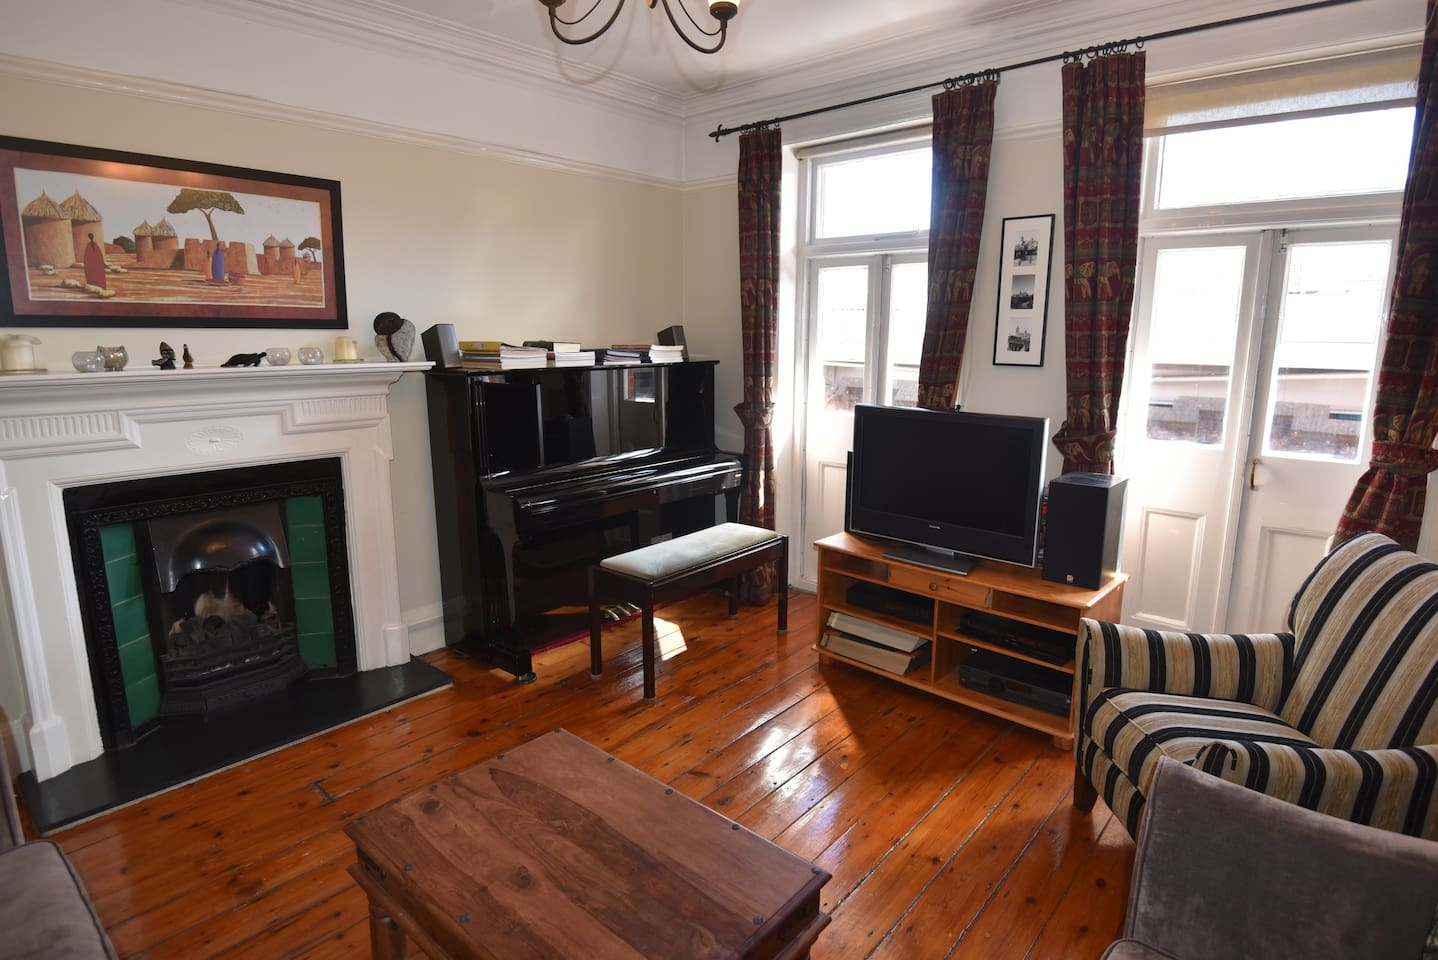 Living room with period fireplace and features, wooden floors, and doors opening onto balcony